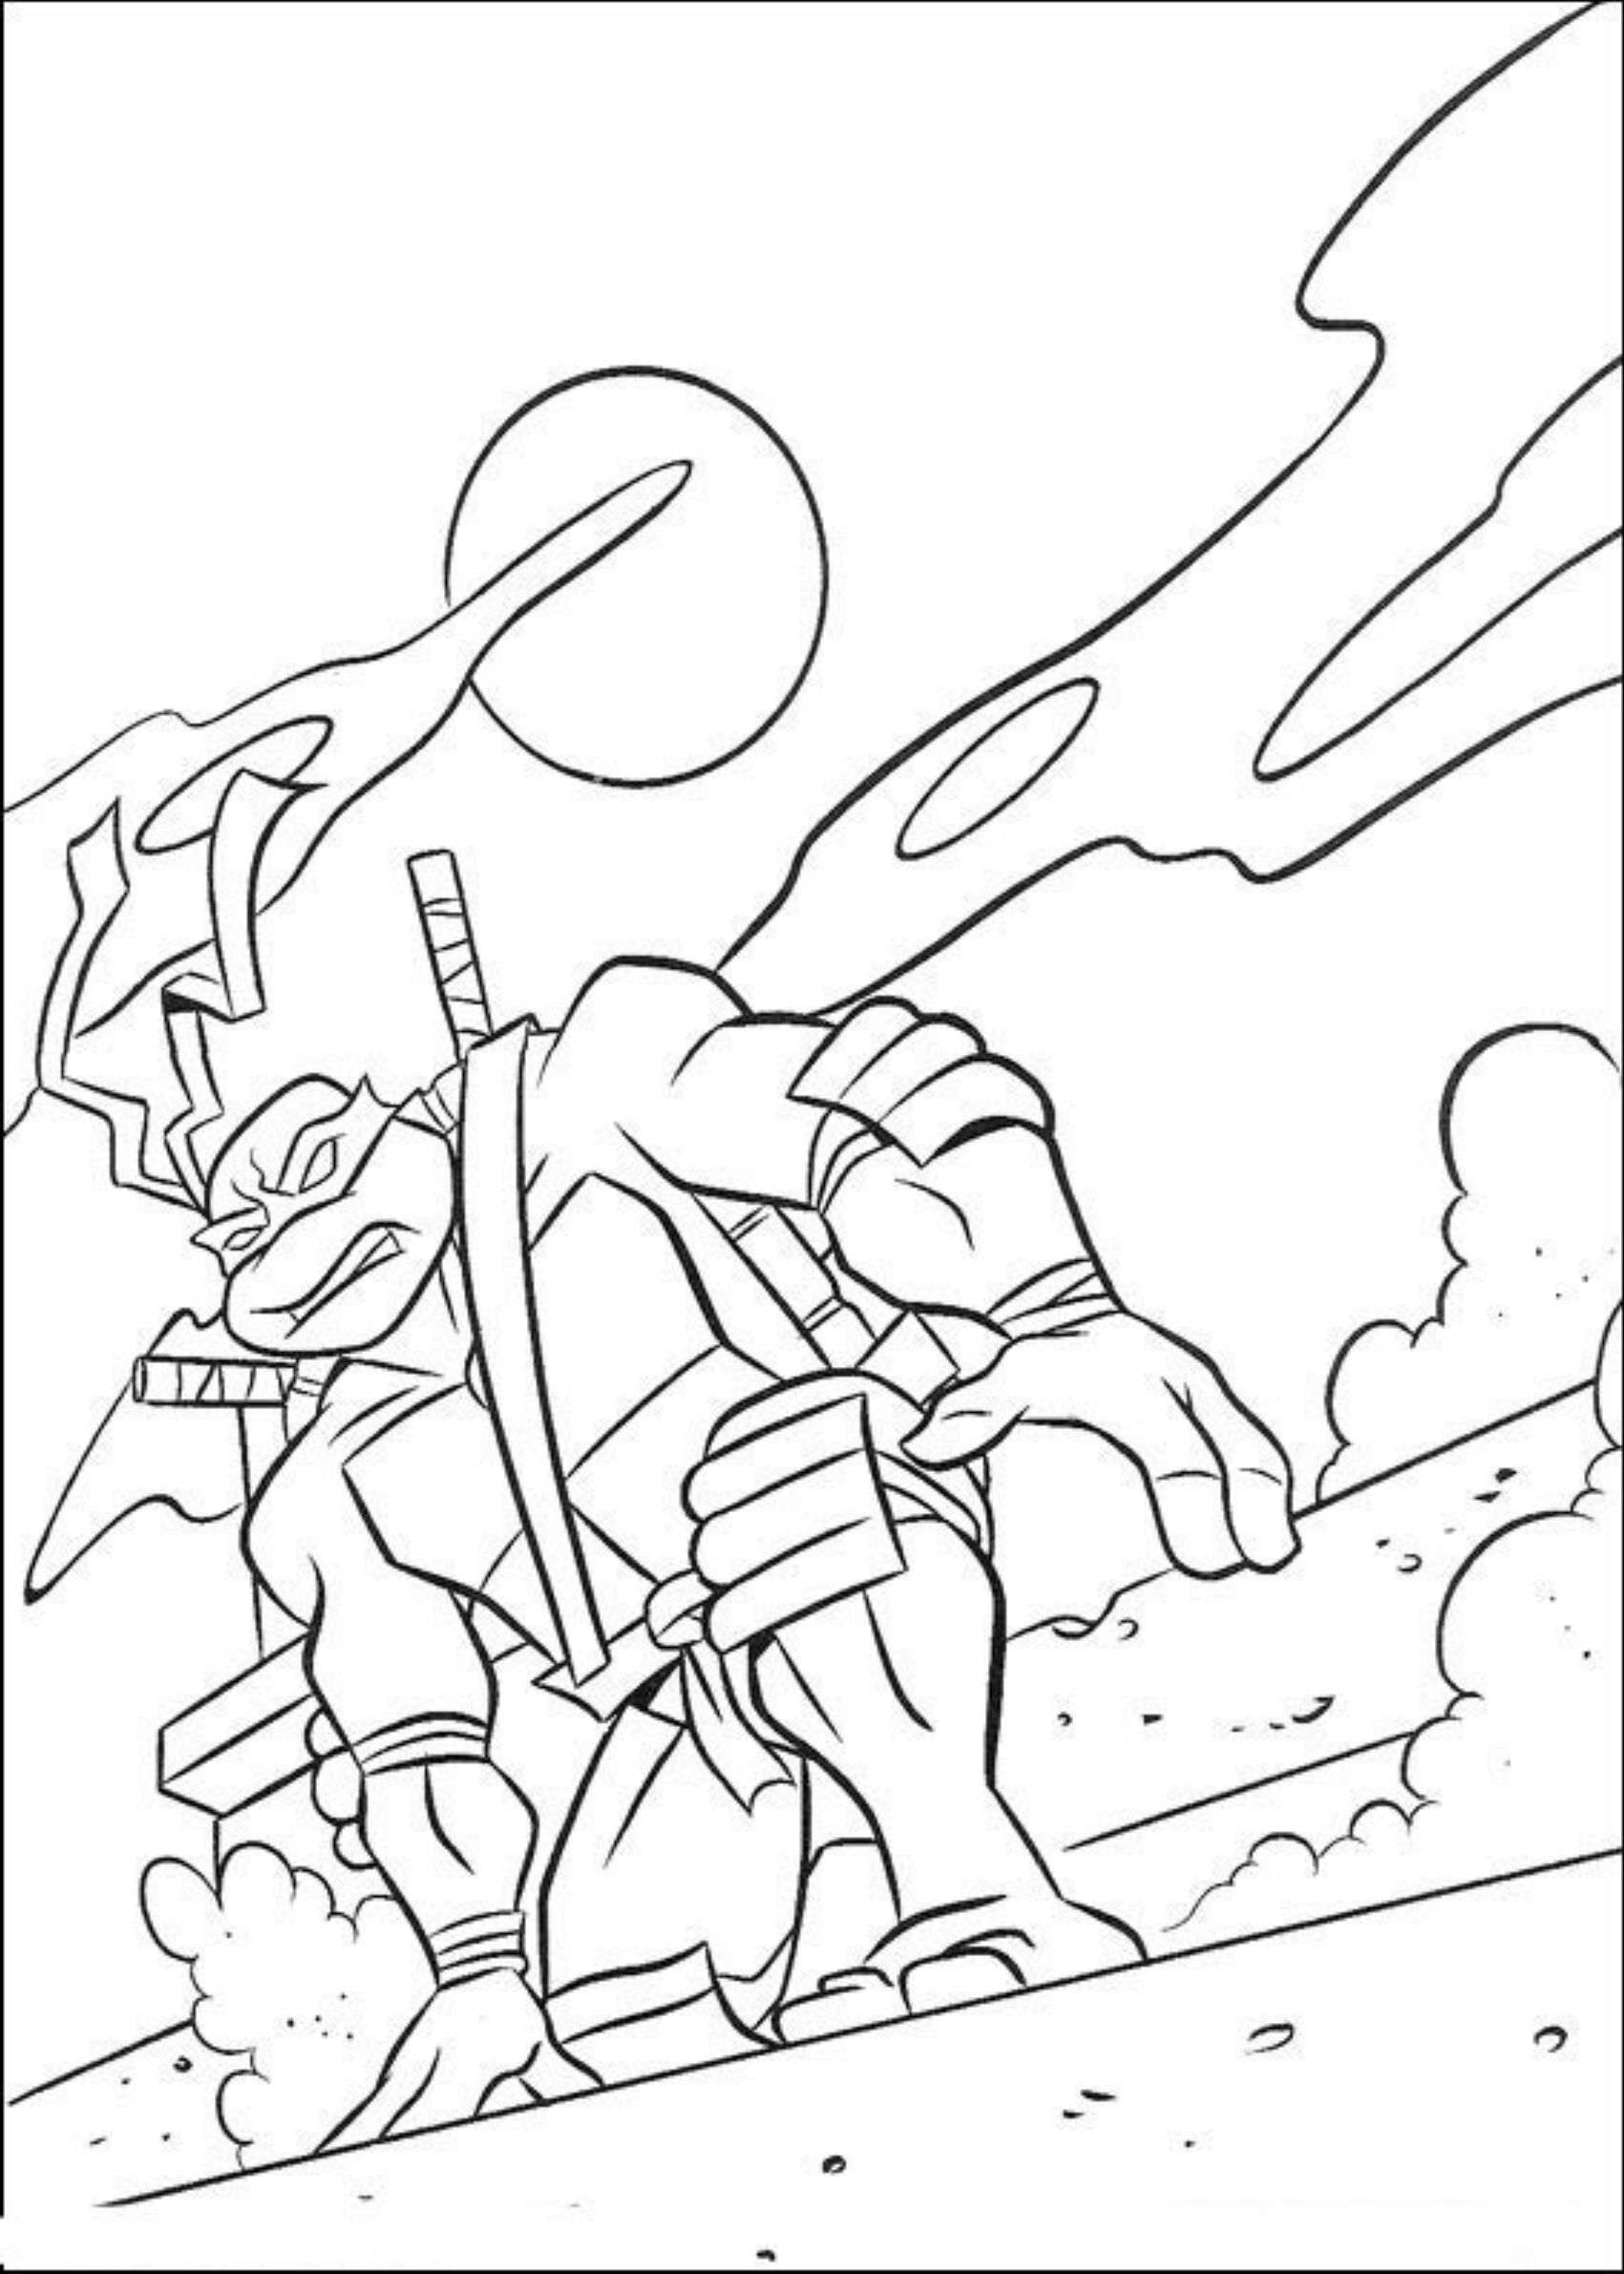 ninja turtle coloring pages for kids four kids mutant ninja tortoise turtle coloring page kids turtle for coloring ninja pages